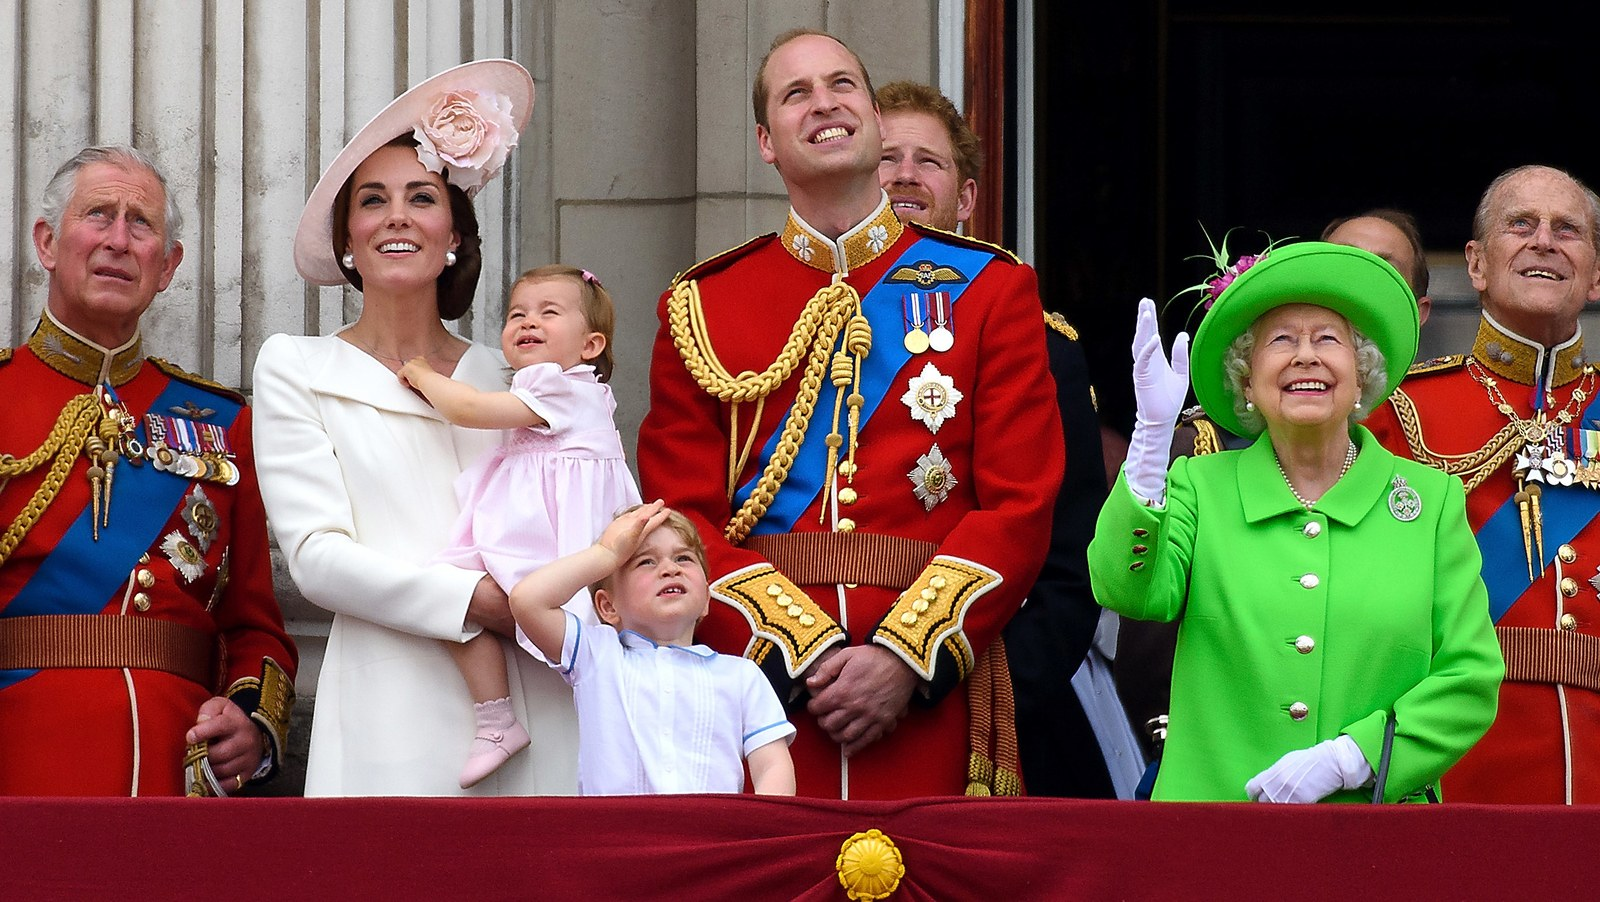 The royal family at Trooping the Colour in 2016.